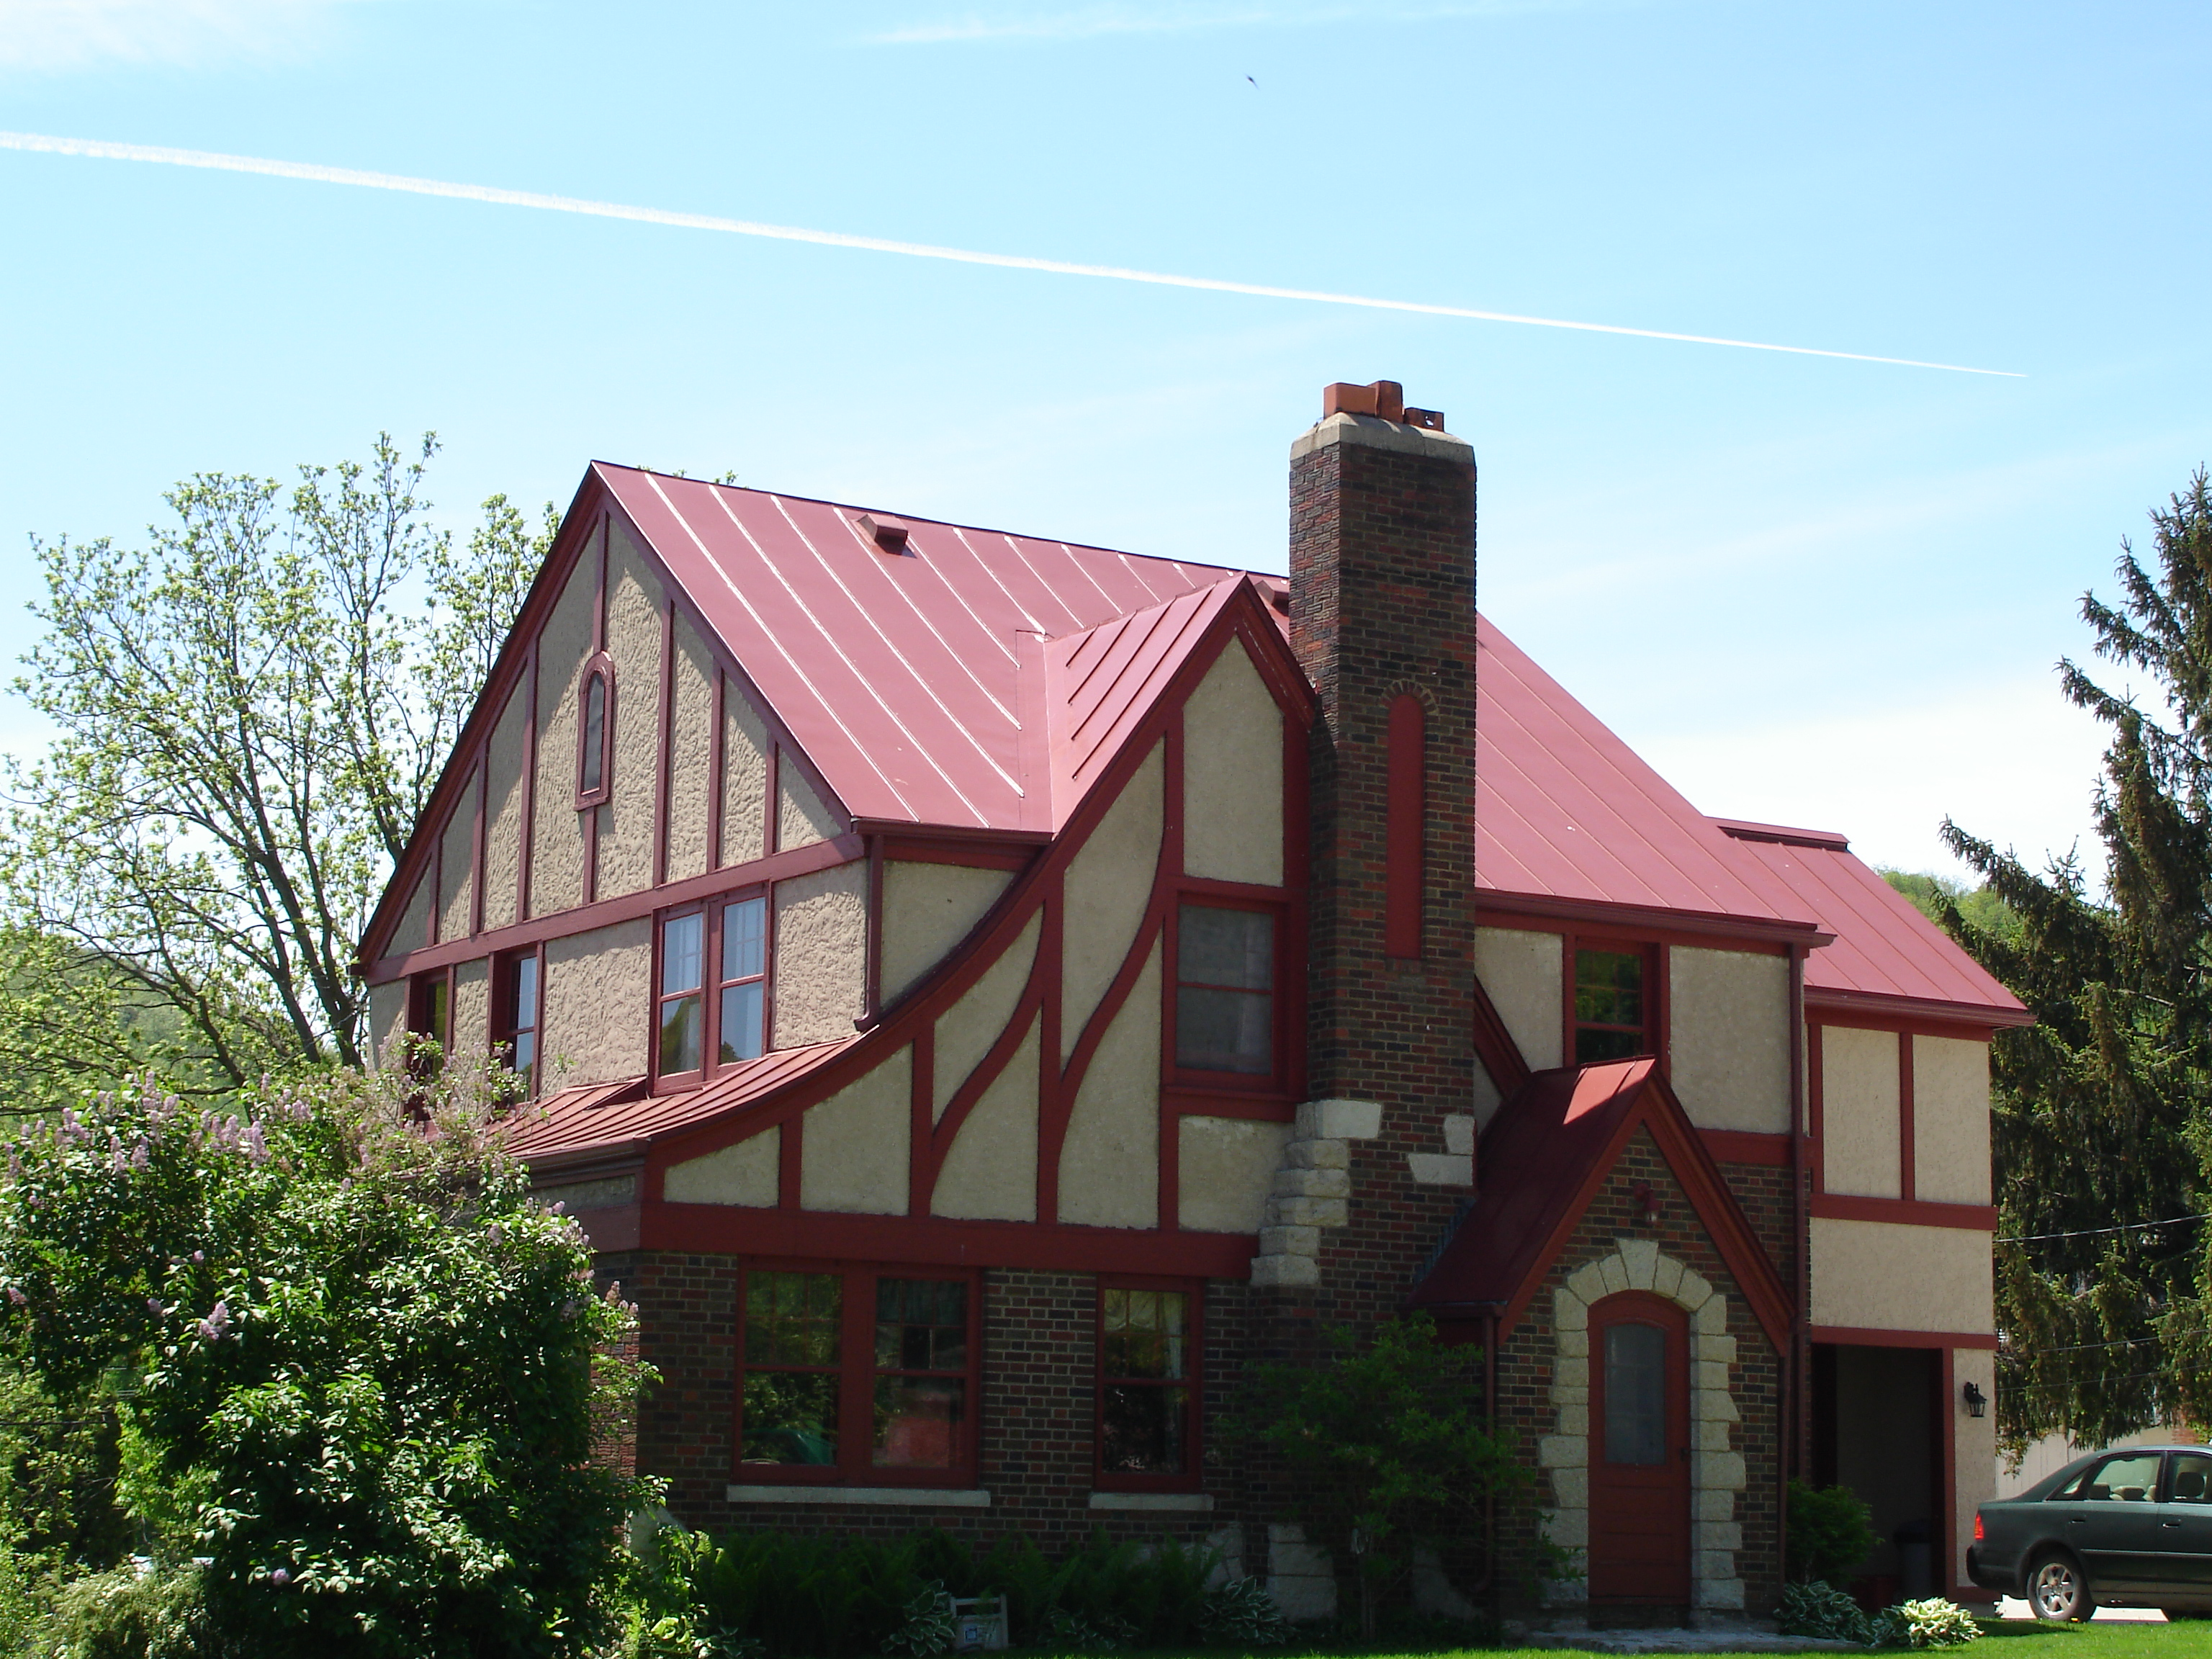 sheet Metal Roofing red colonial residential house wisconsin iowa illinois minnesota north dakota standing seam